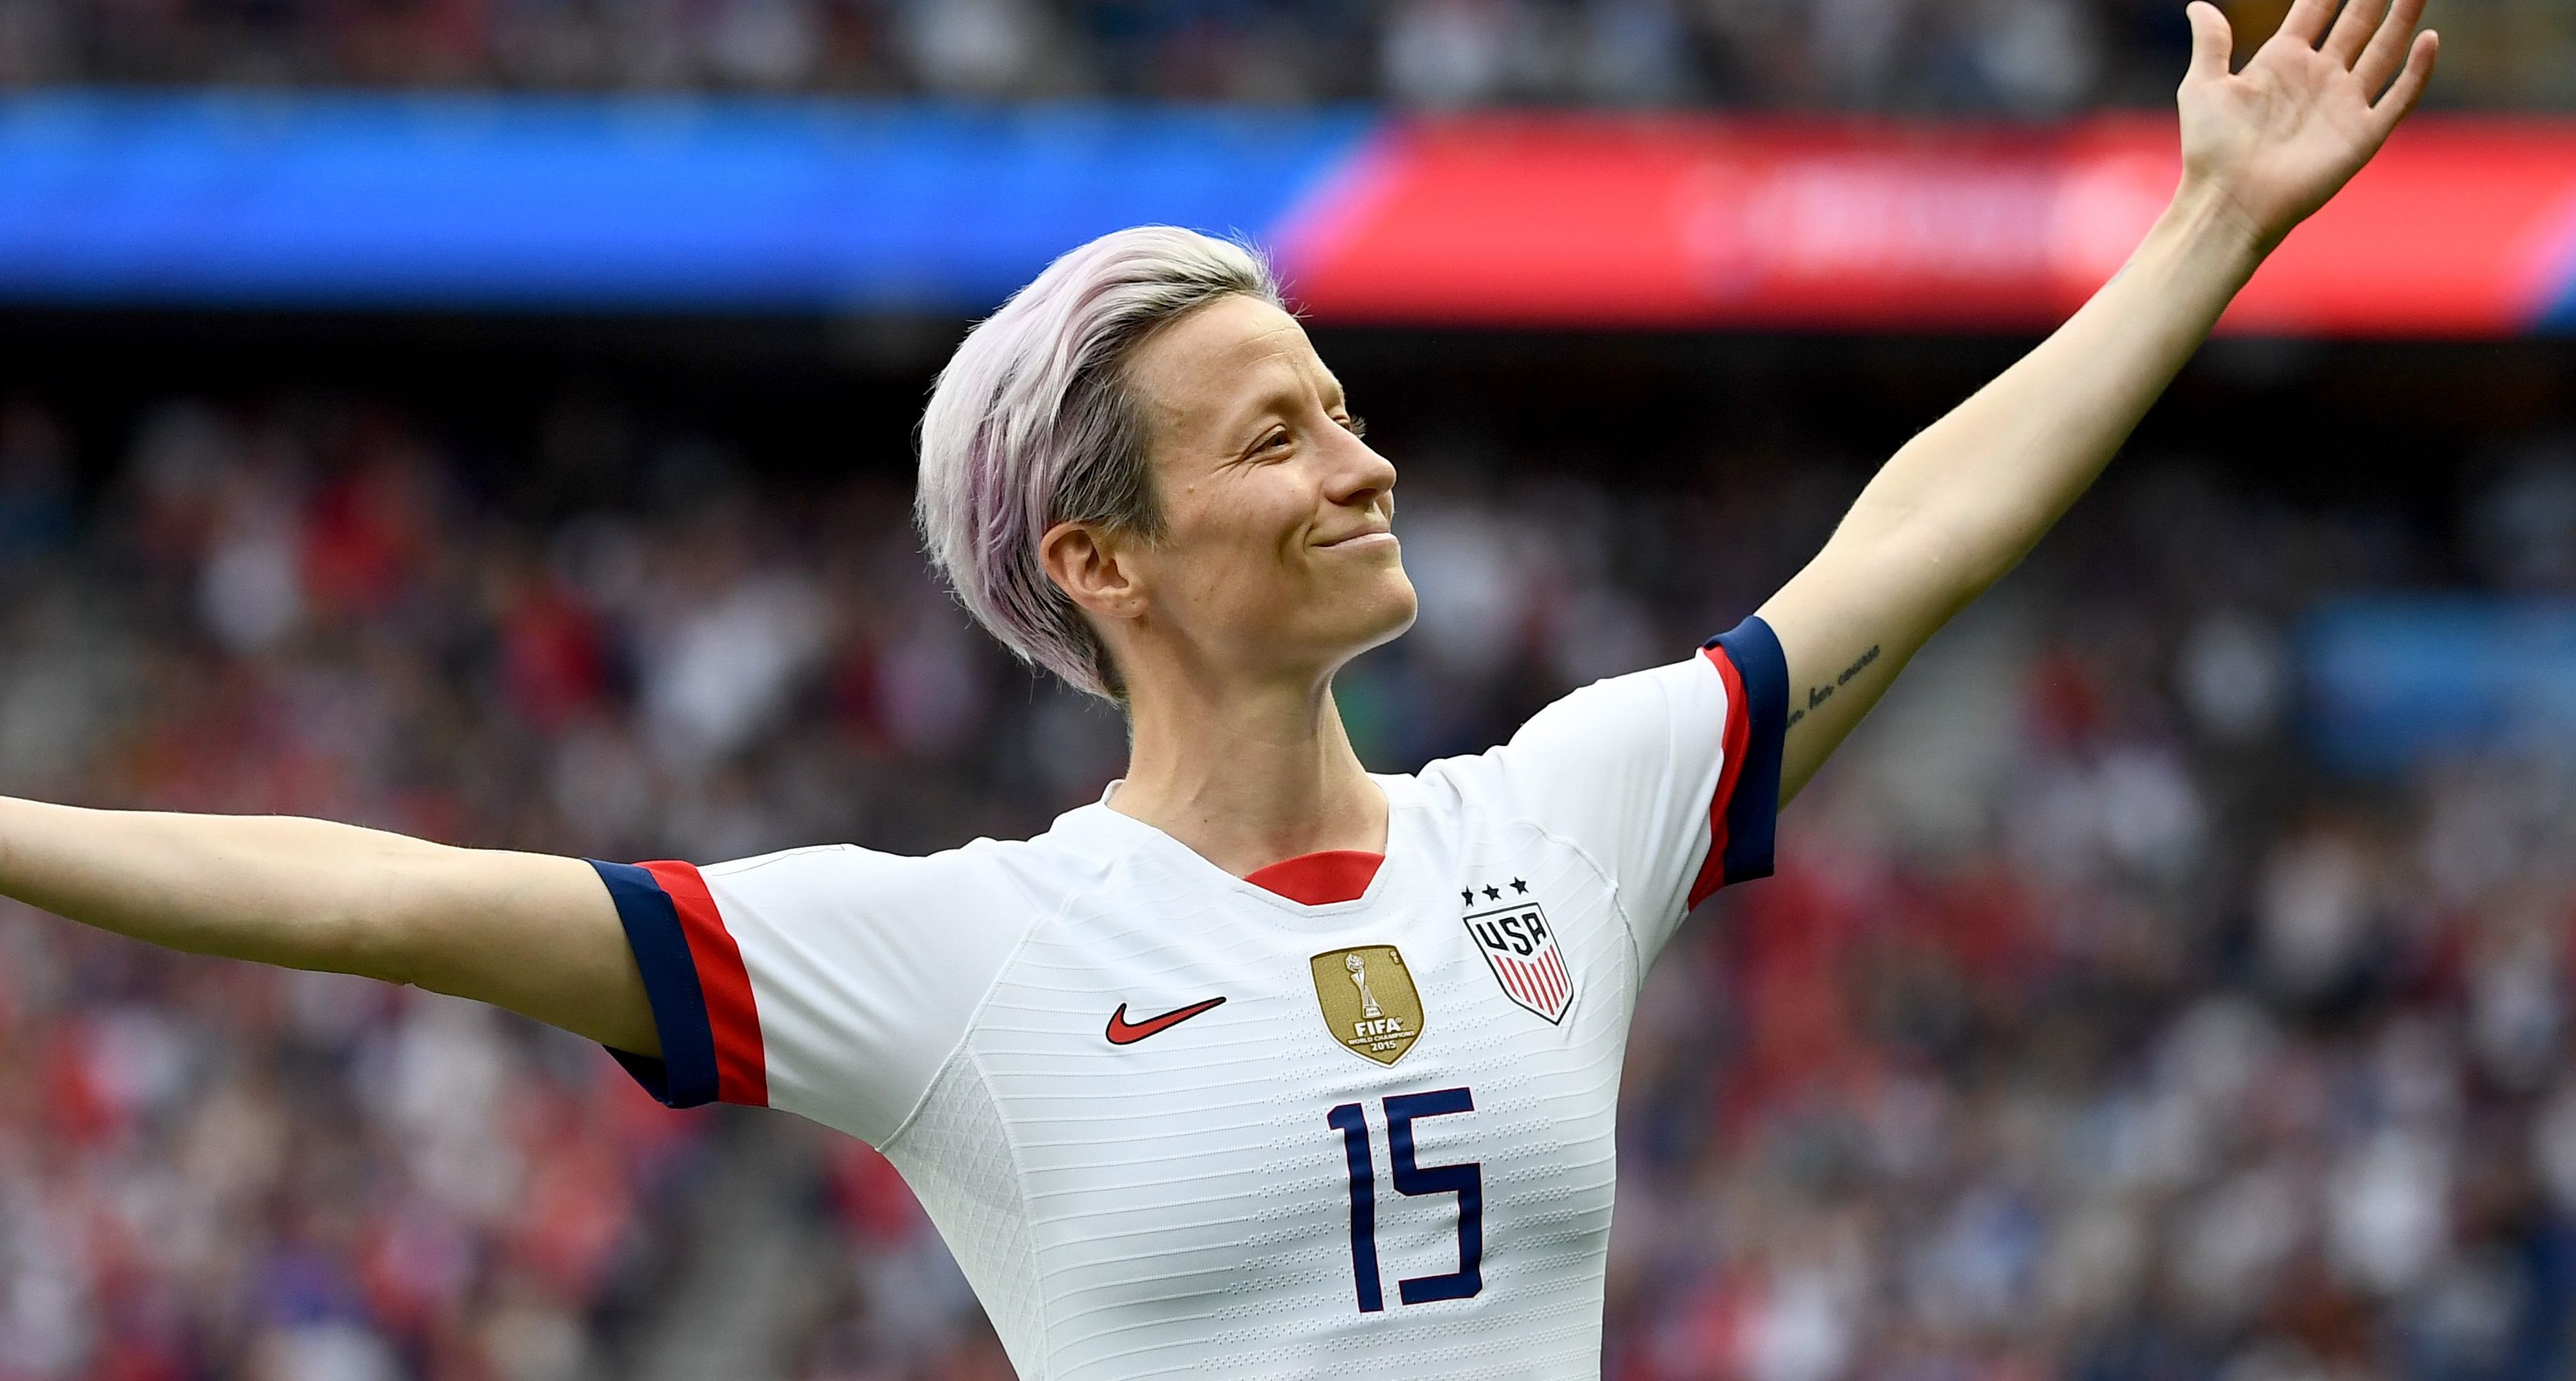 Megan Rapinoe celebrates goal against France in Women's World Cup